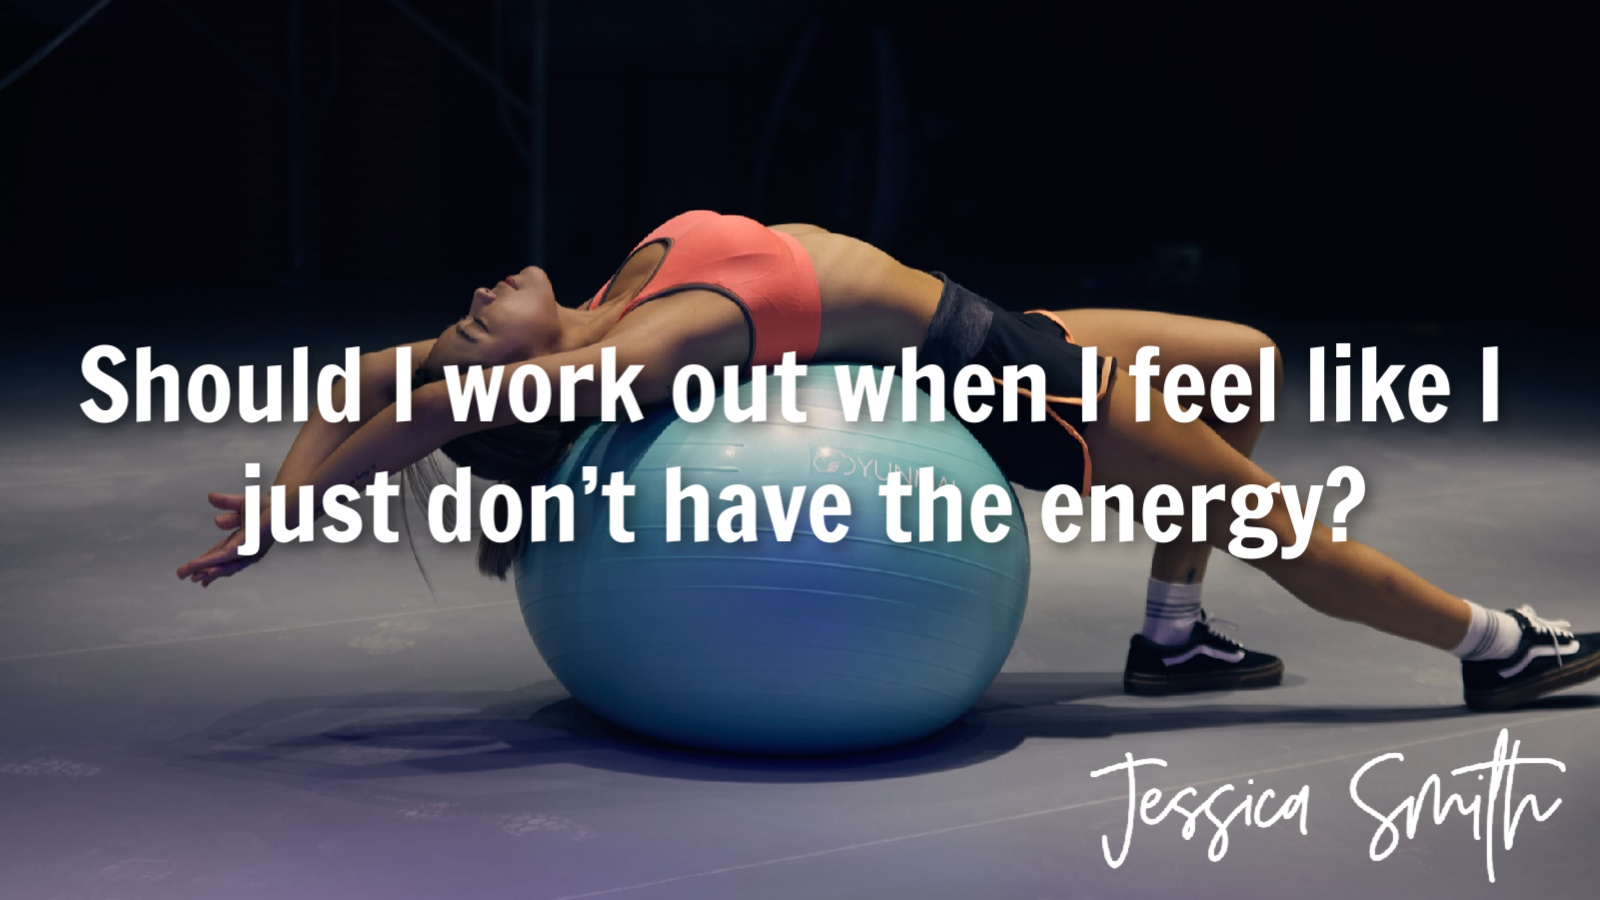 Should I work out when I feel like I just don't have the energy by Jessica Smith